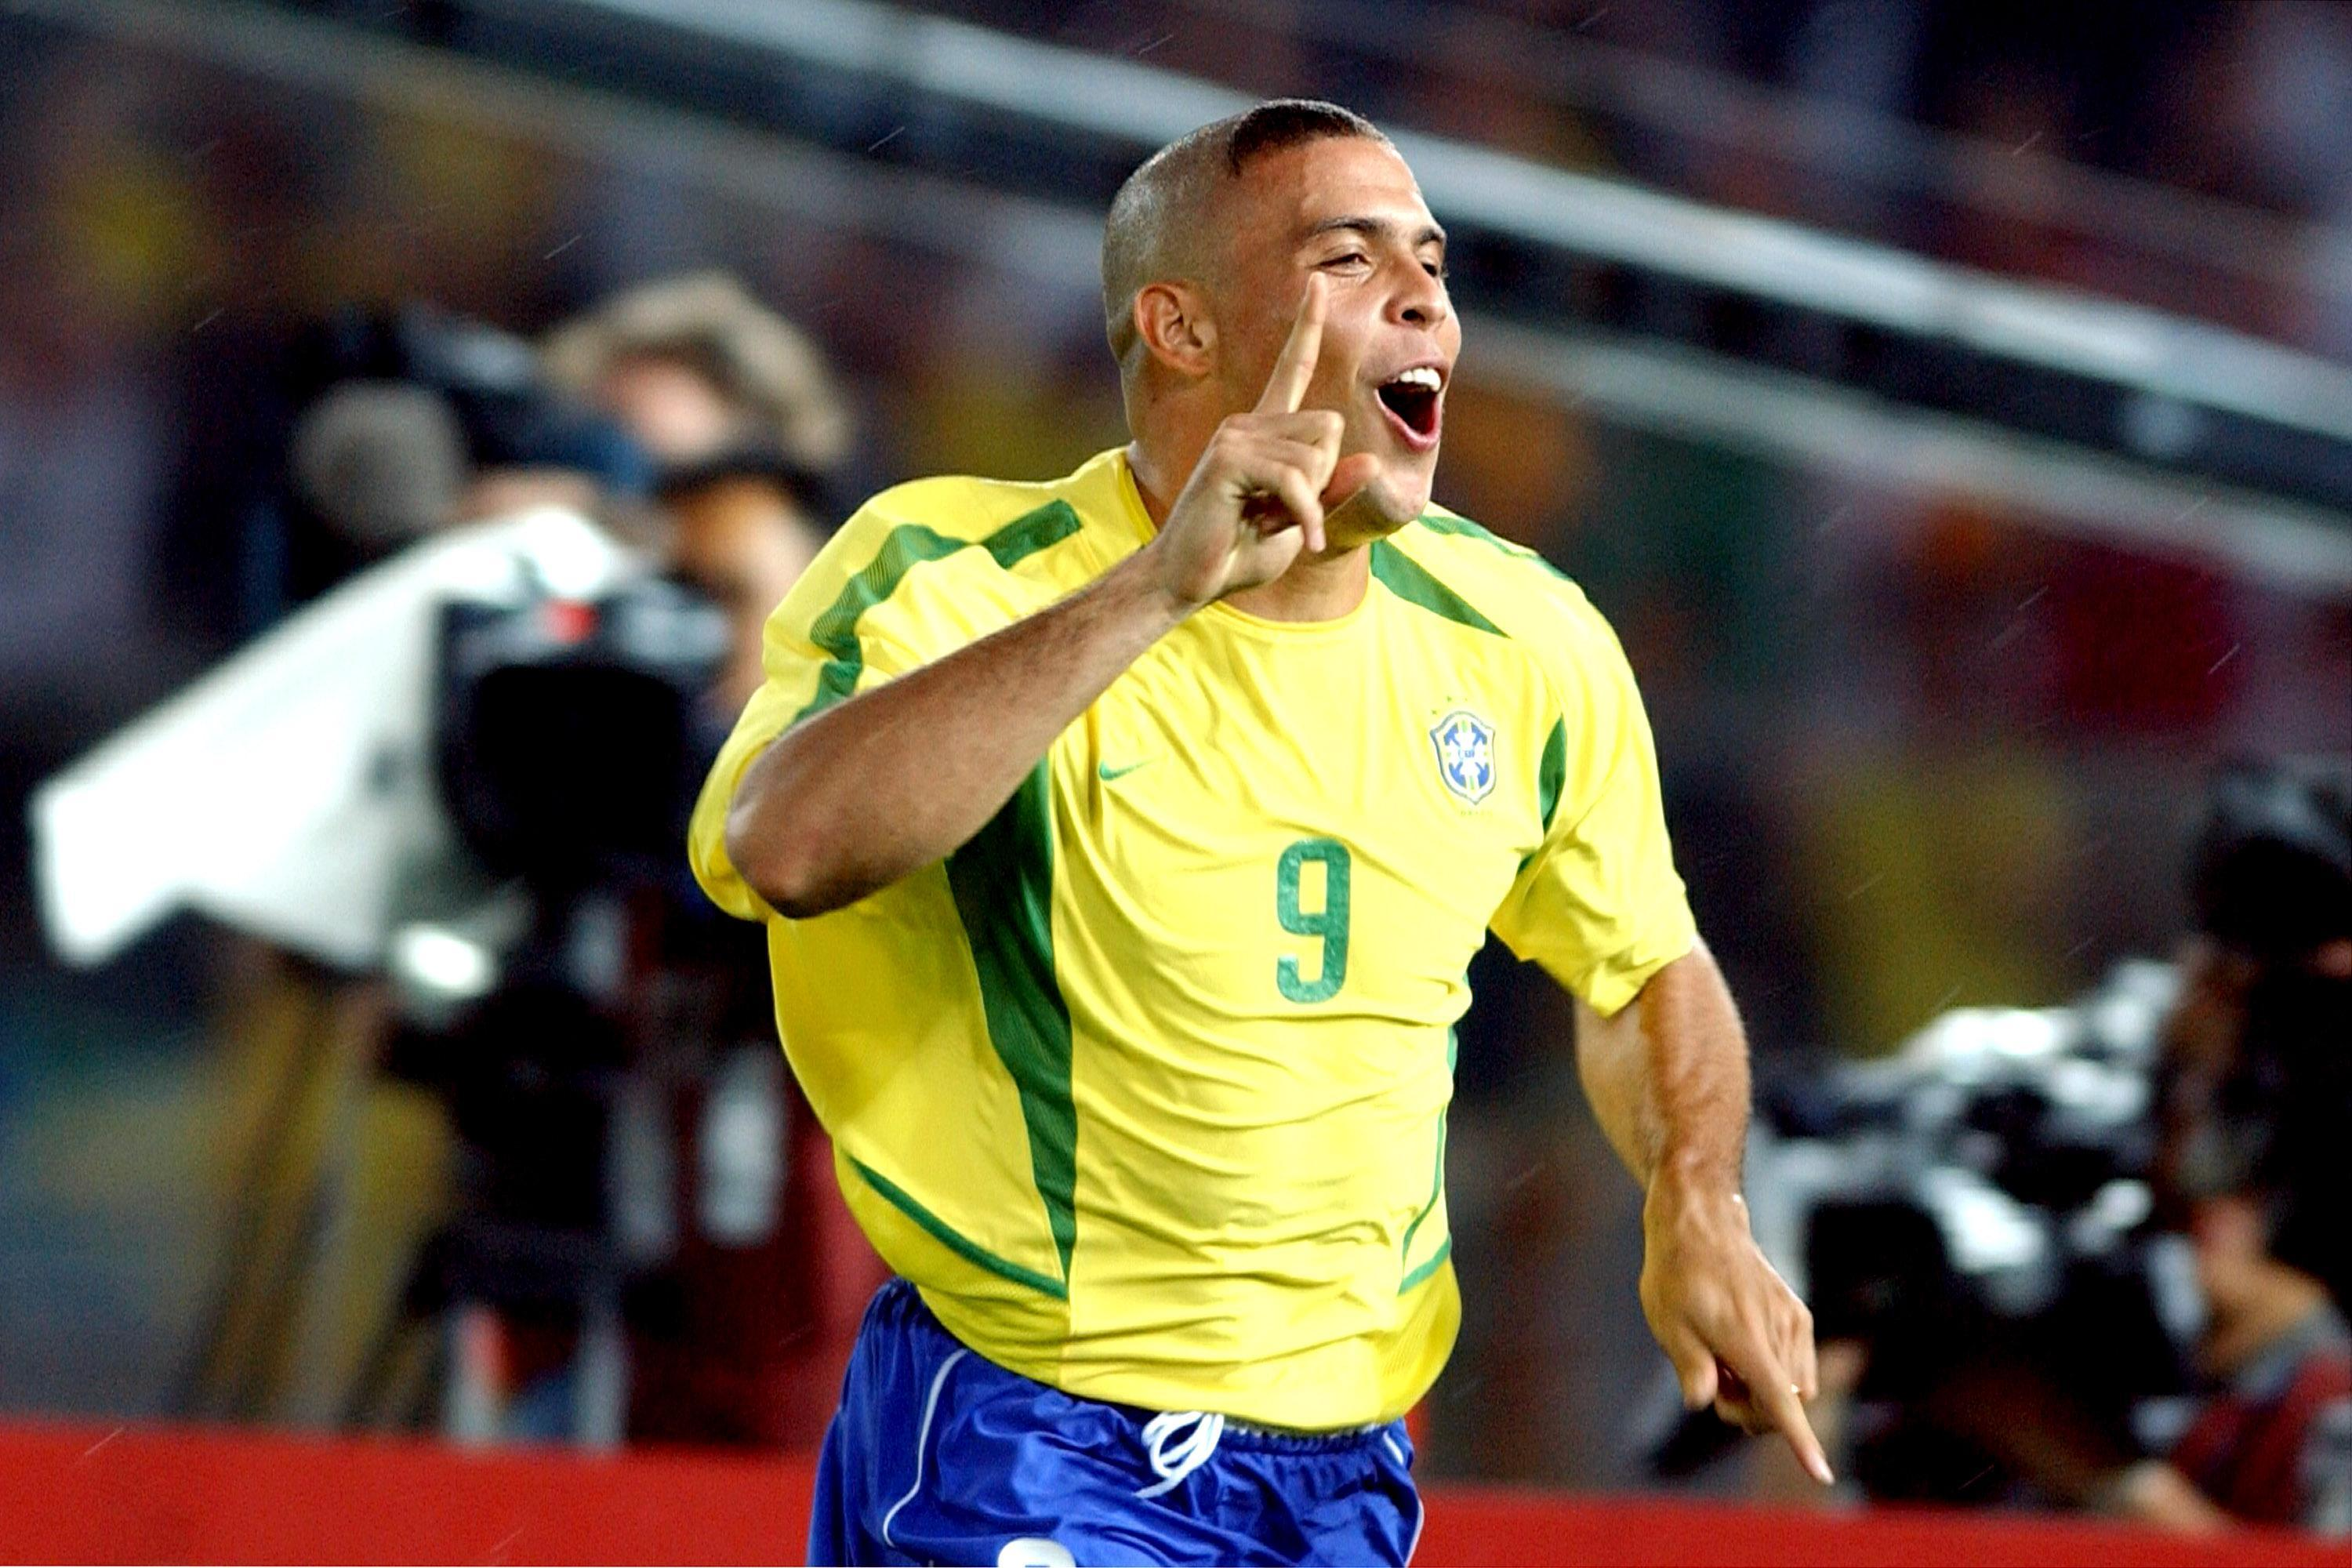 Brazil's Ronaldo celebrates scoring at the 2002 World Cup